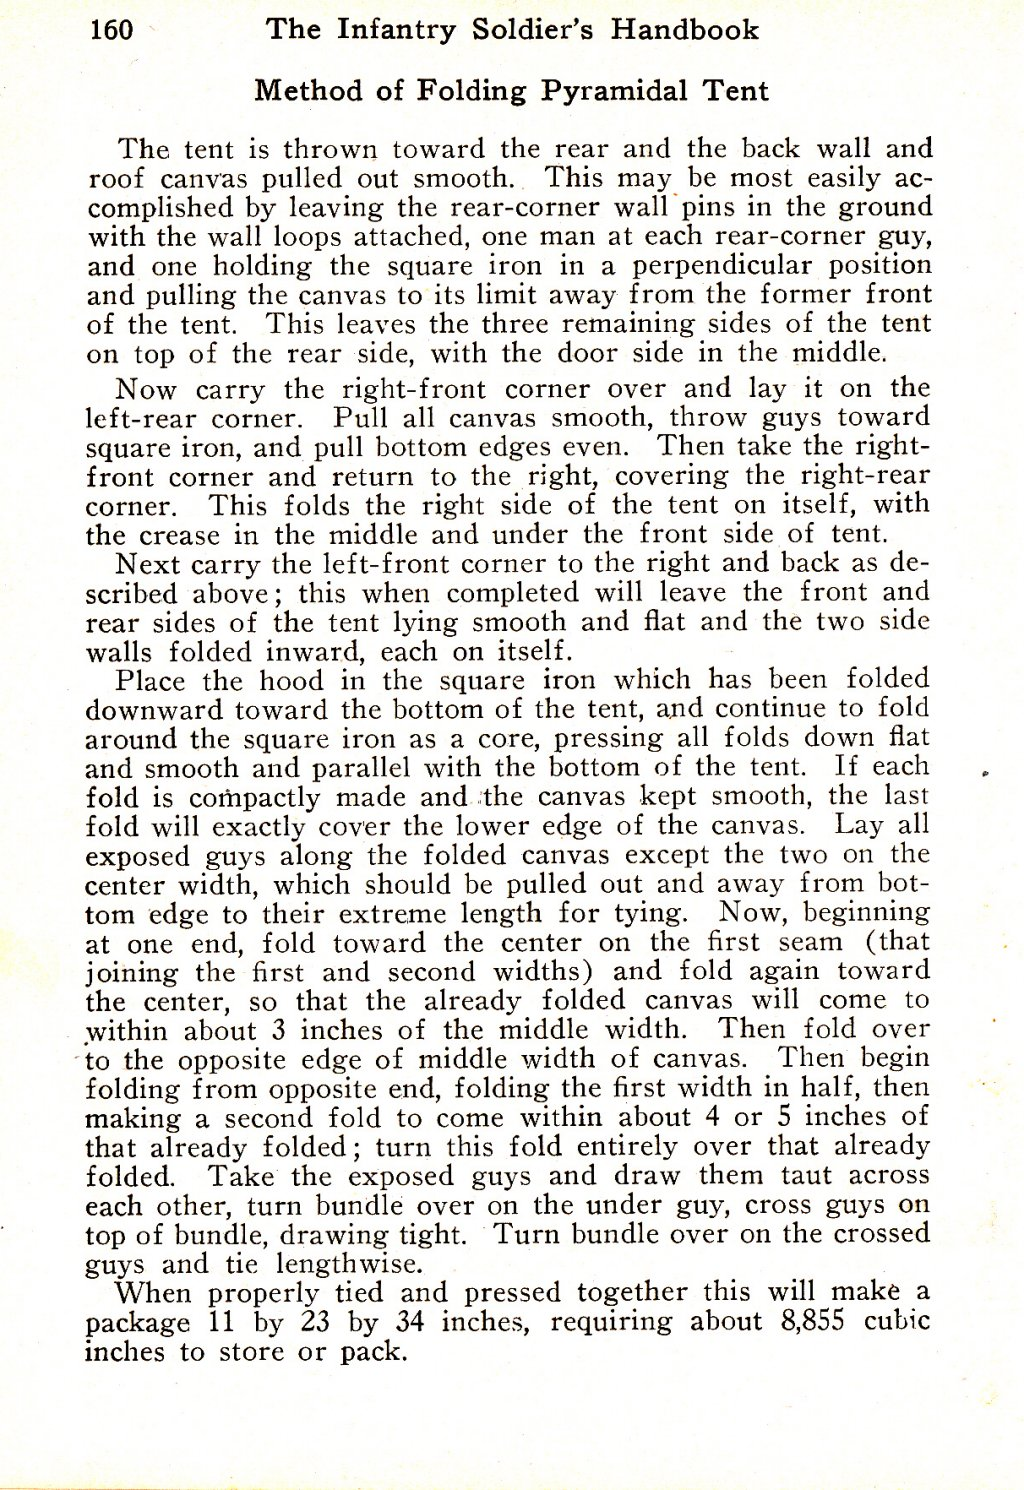 314th Infantry Regiment - Infantry Soldiers Handbook - Waldron - Page 160